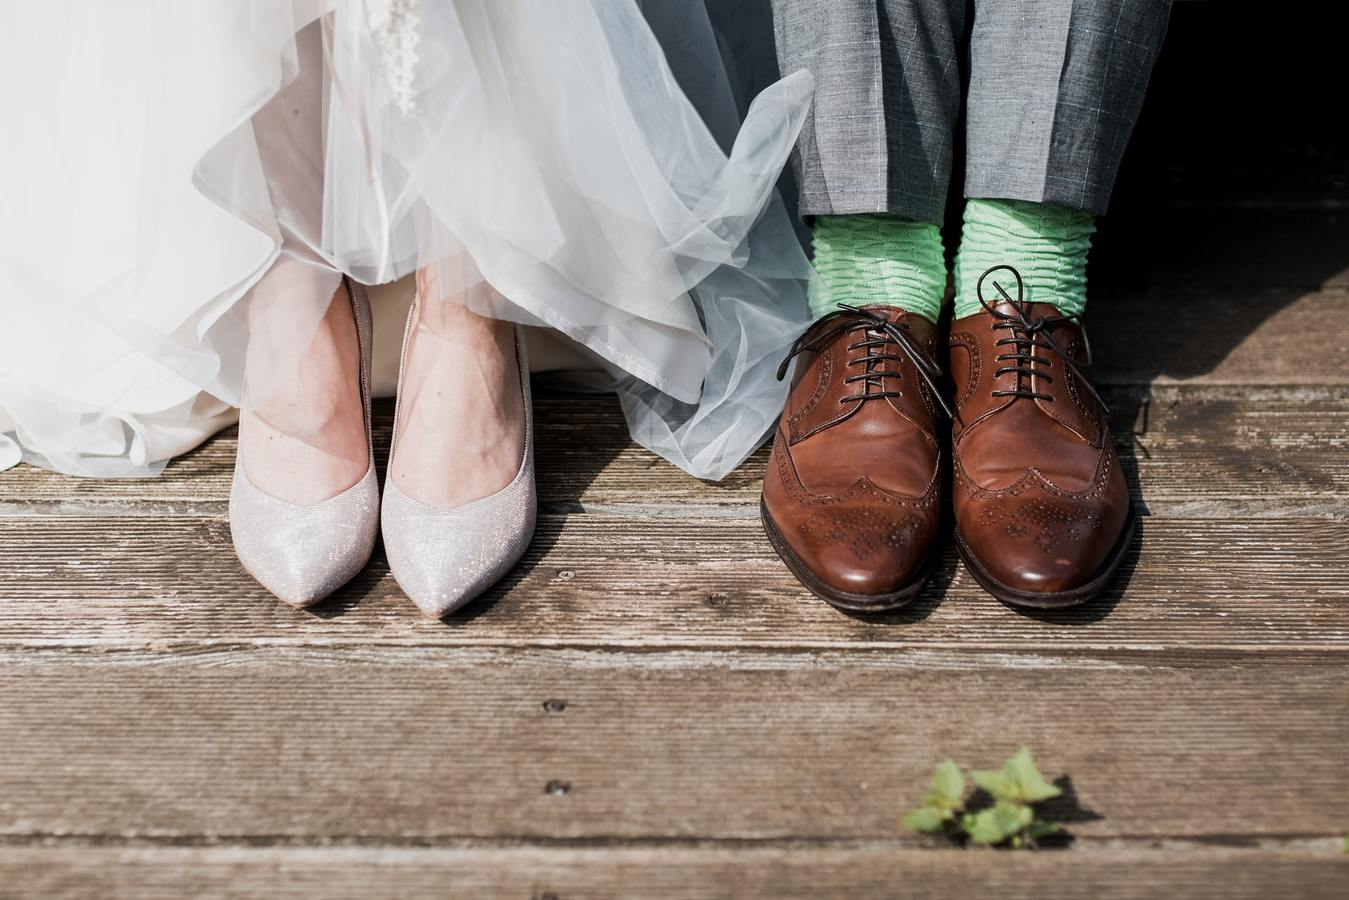 Bride and groom's shoes against a wooden background